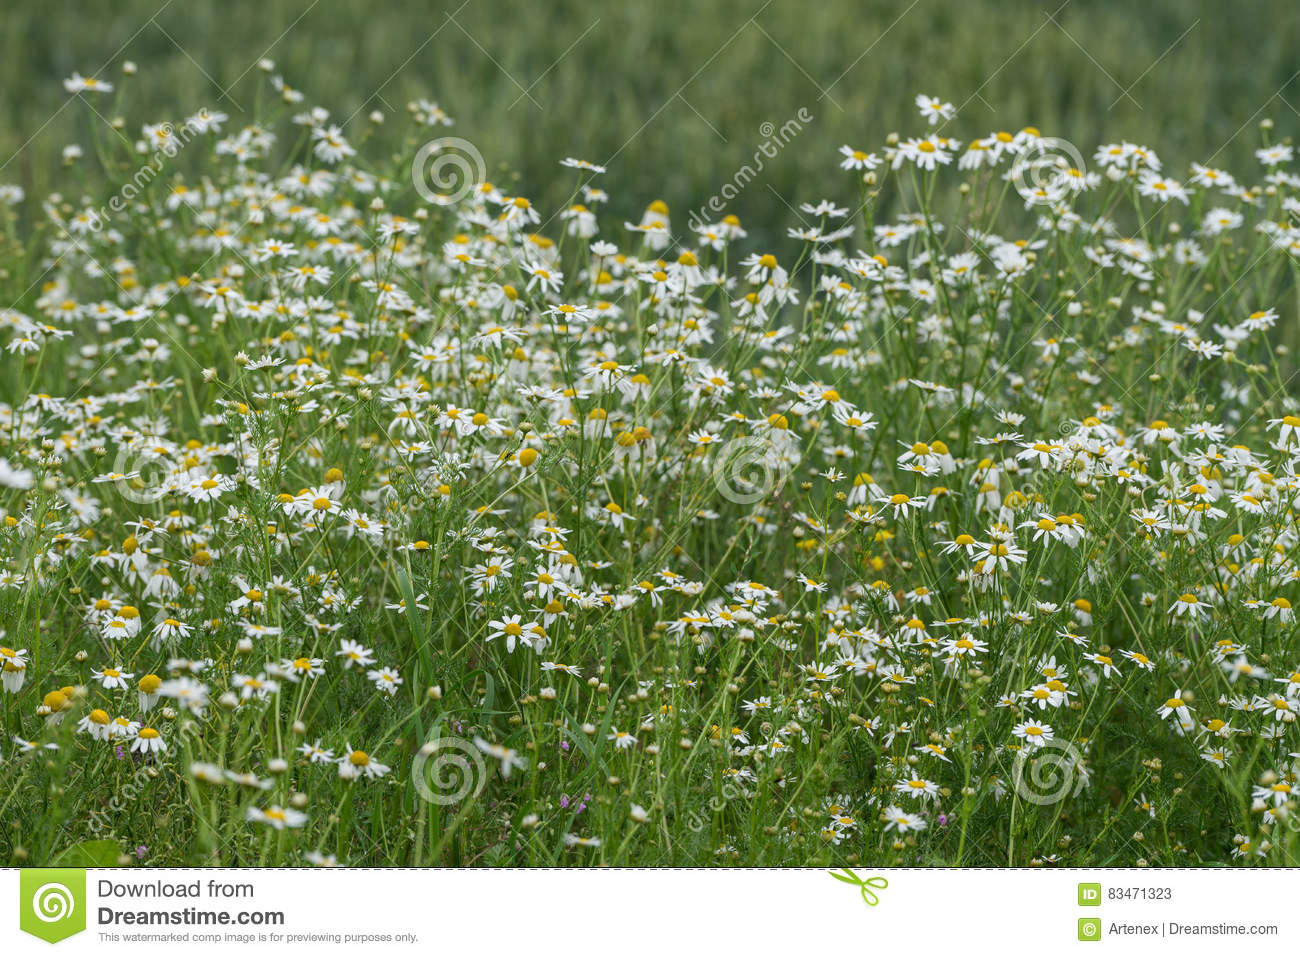 Corn Chamomile Blossom. Mayweed Bloom. White Blooming Flowers.